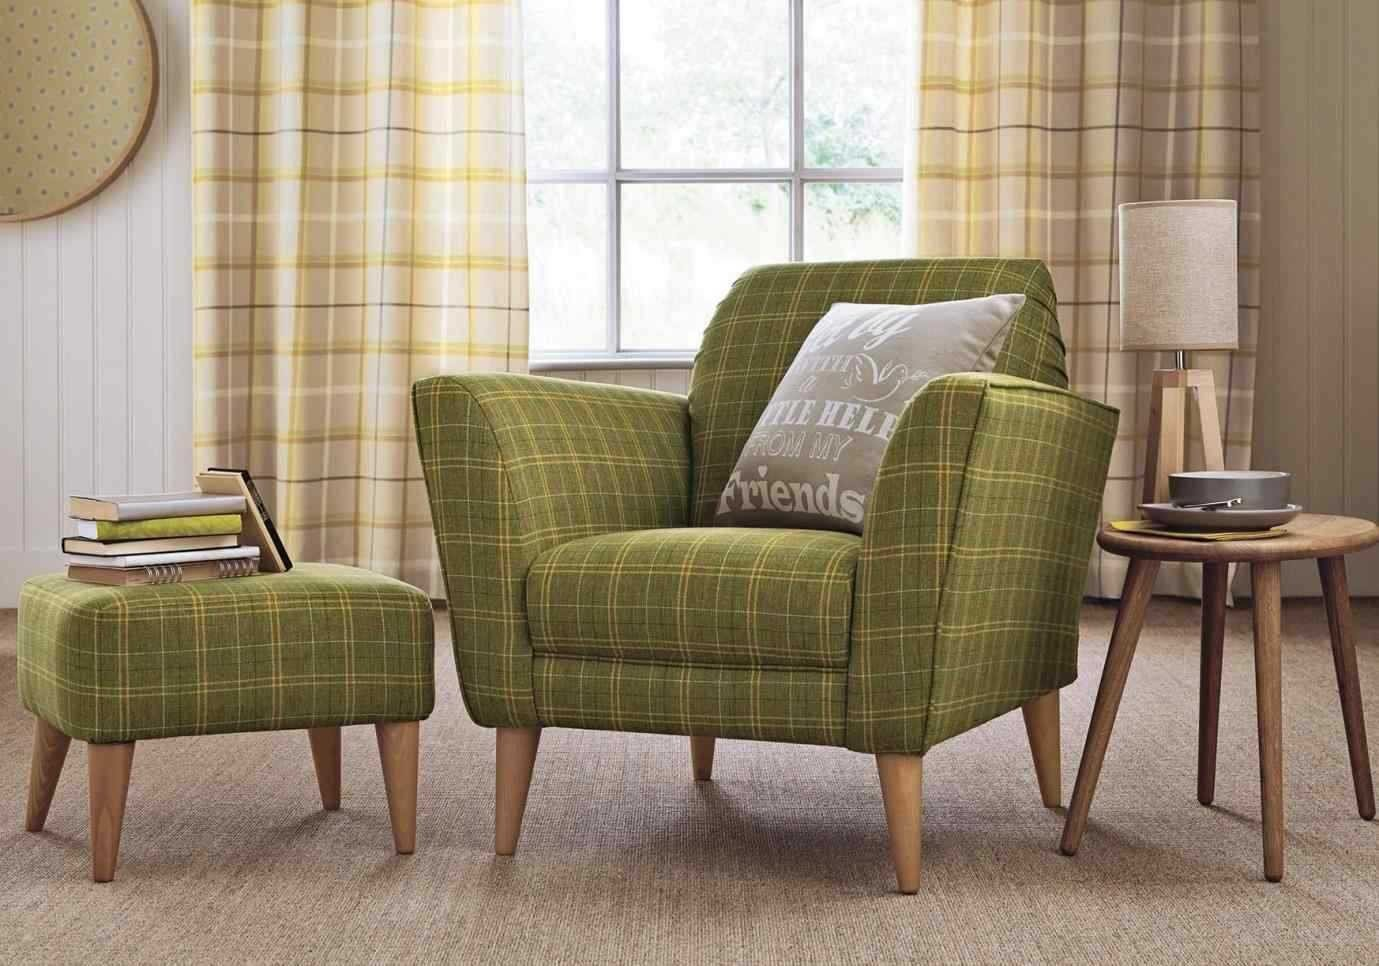 Most Comfortable Living Roomfurniture Inspirational Most fortable Living Room Chair Inspirations and Most fortable Desk Chair